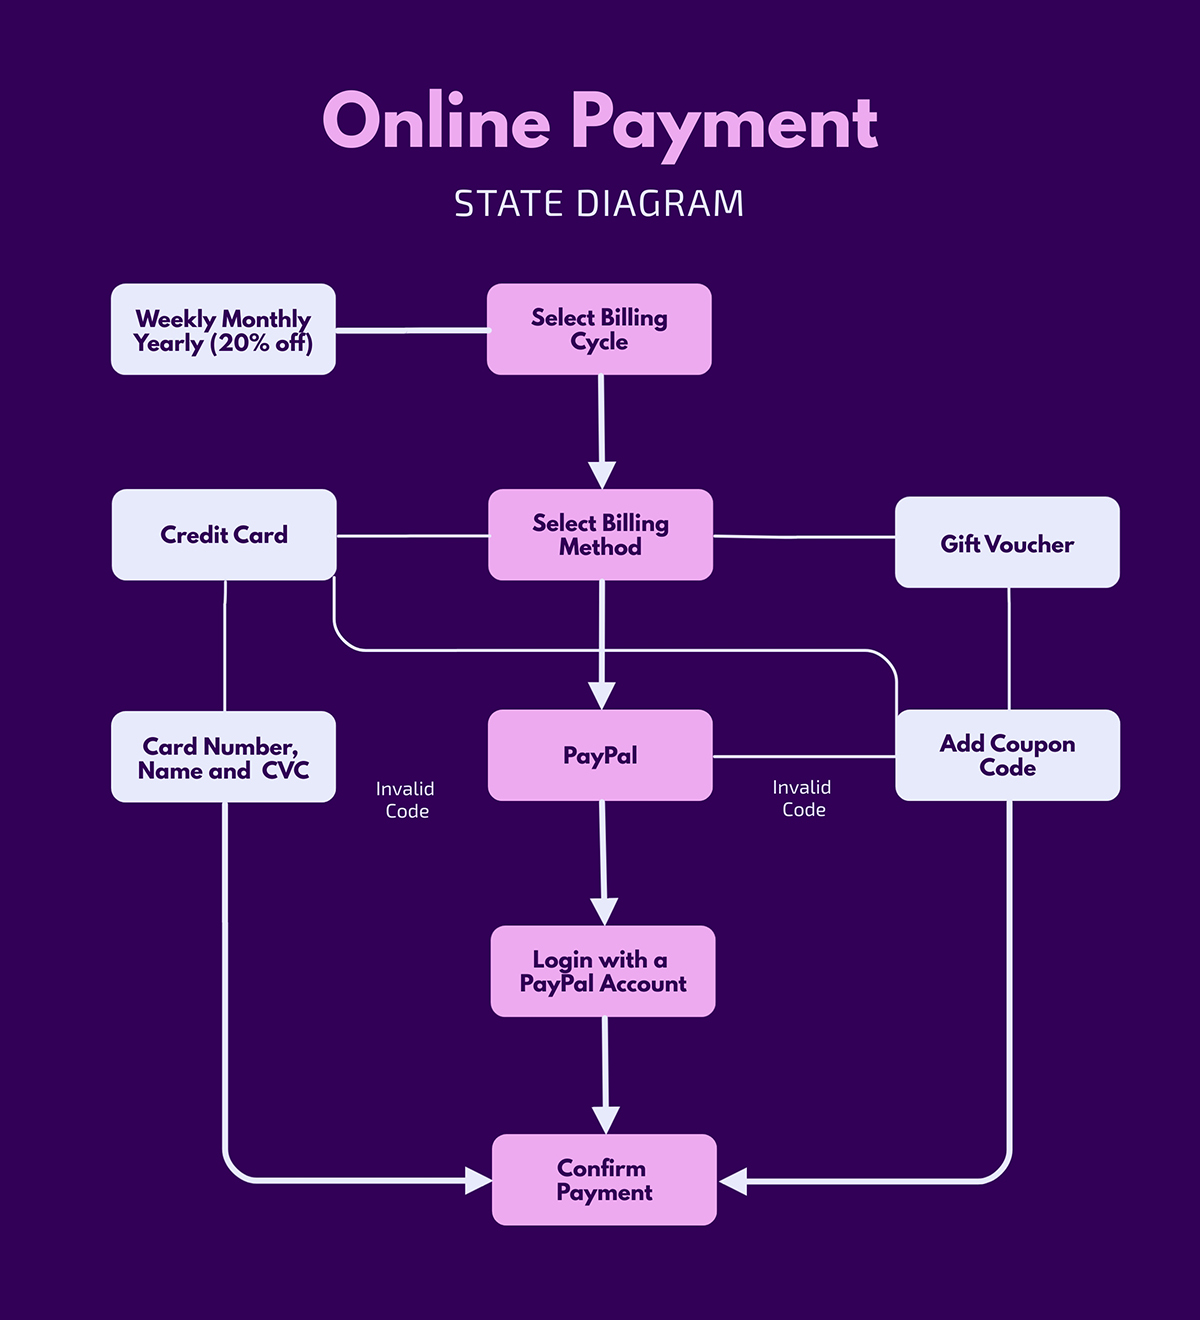 An online shopping state diagram template available in Visme.